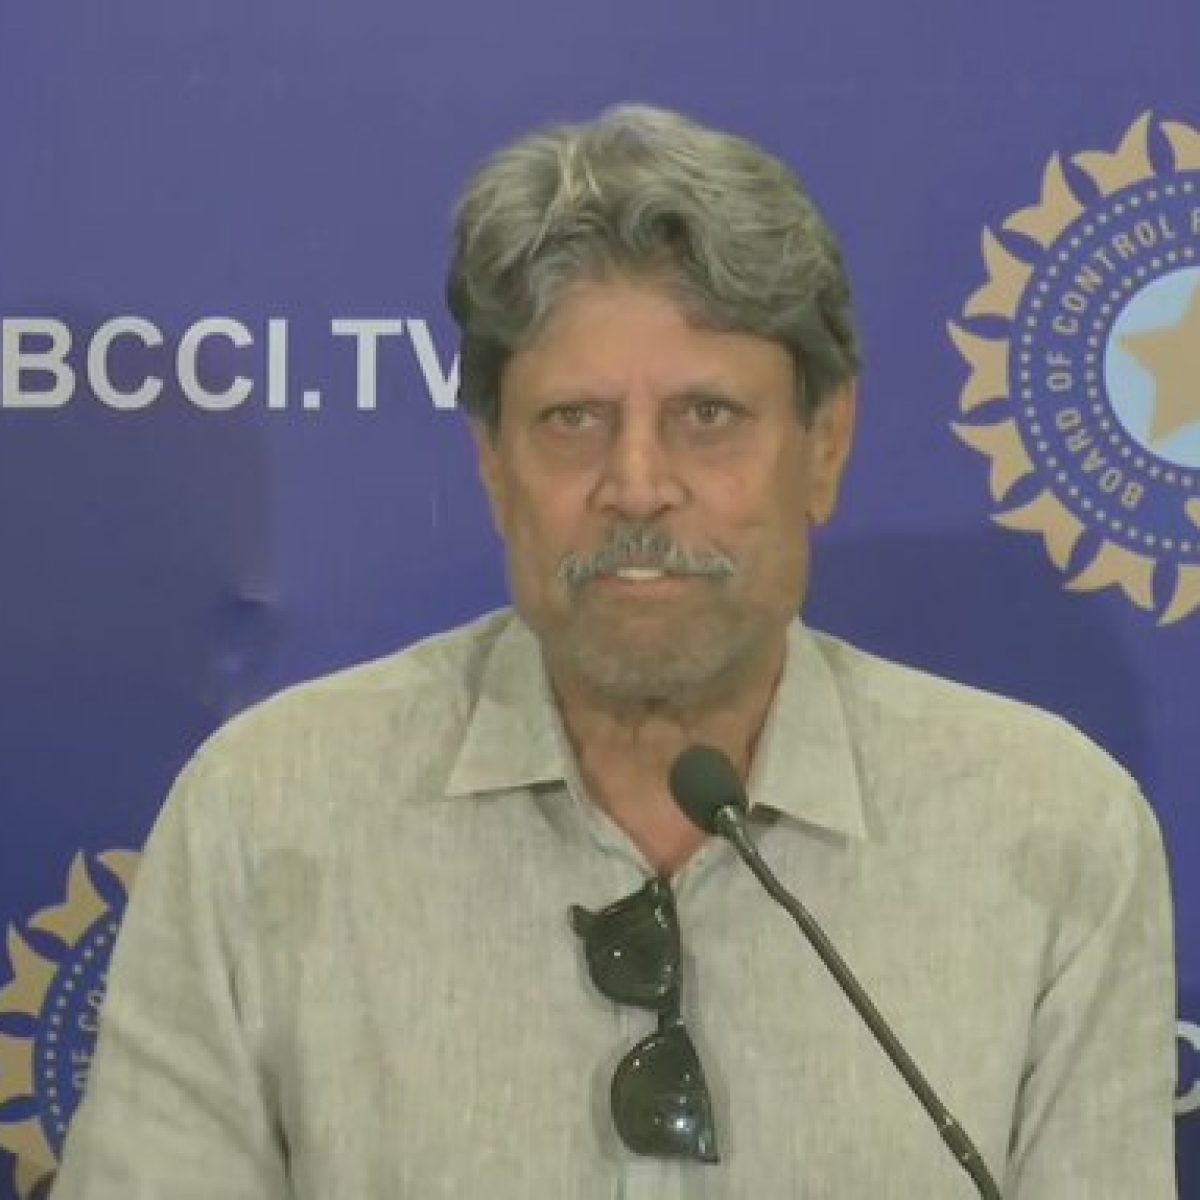 Virat Kohli's preference for Ravi Shastri did not influence coach selection, says Kapil Dev